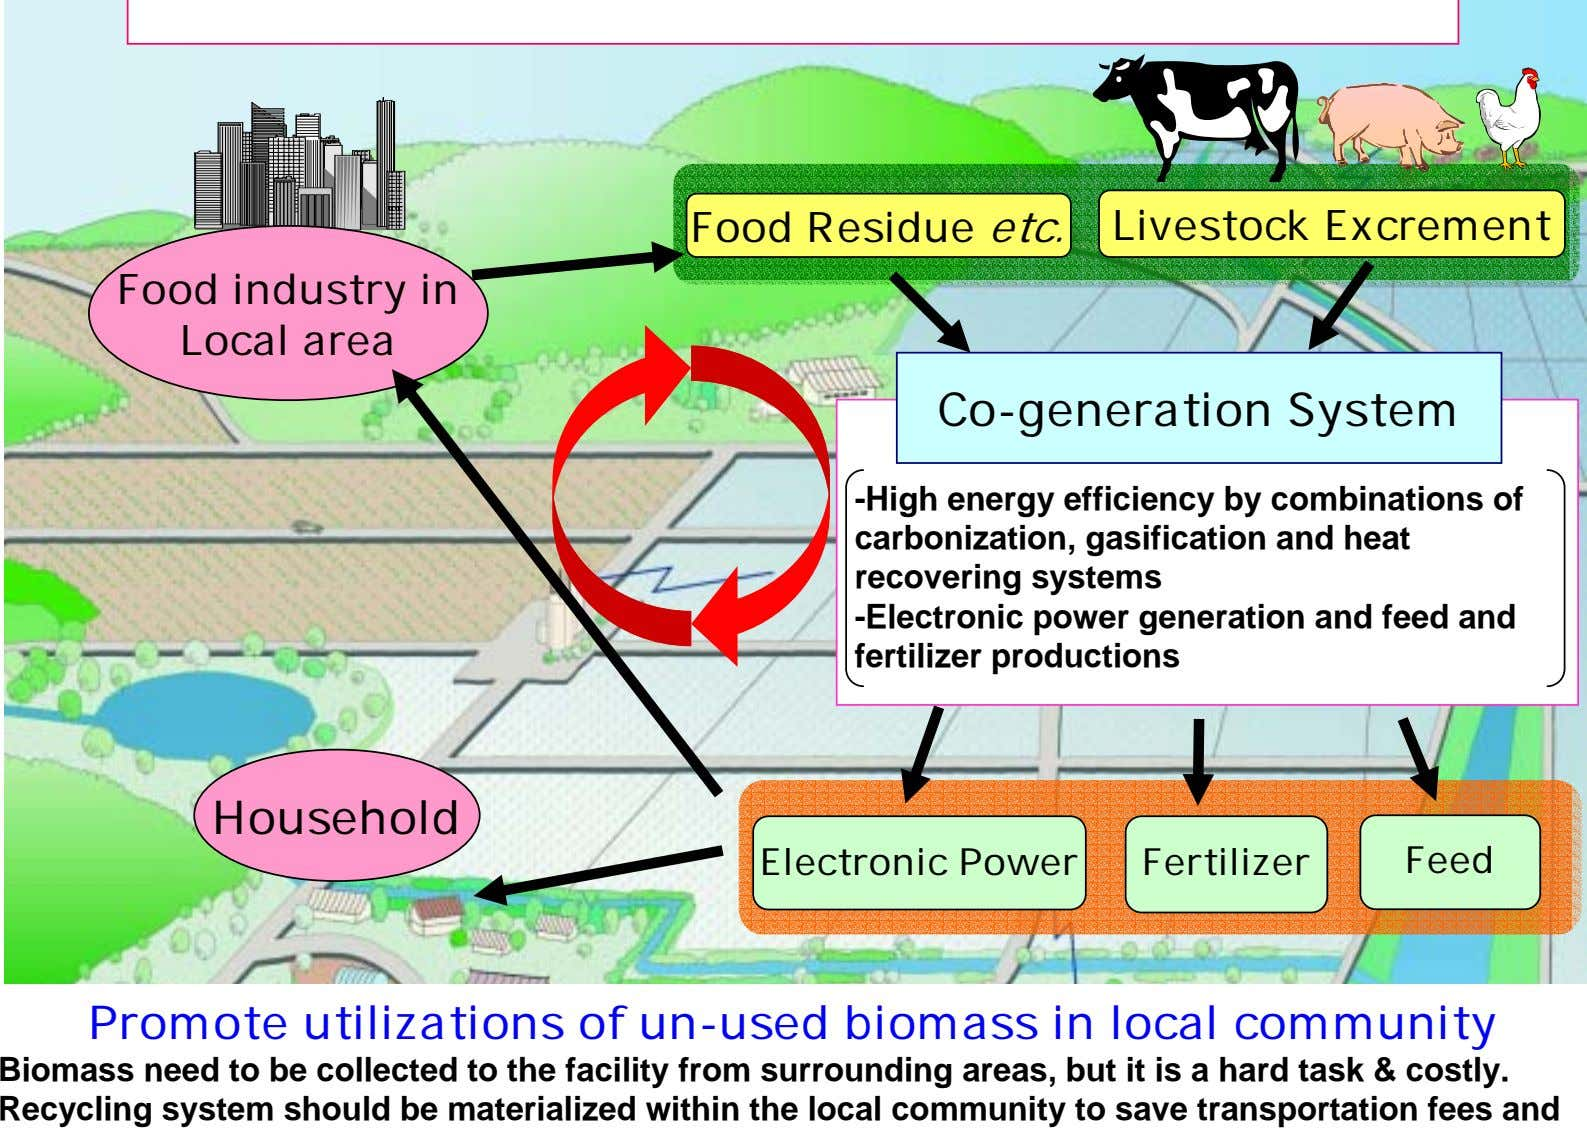 Food Residue etc. Livestock Excrement Food industry in Local area Co-generation System -High energy efficiency